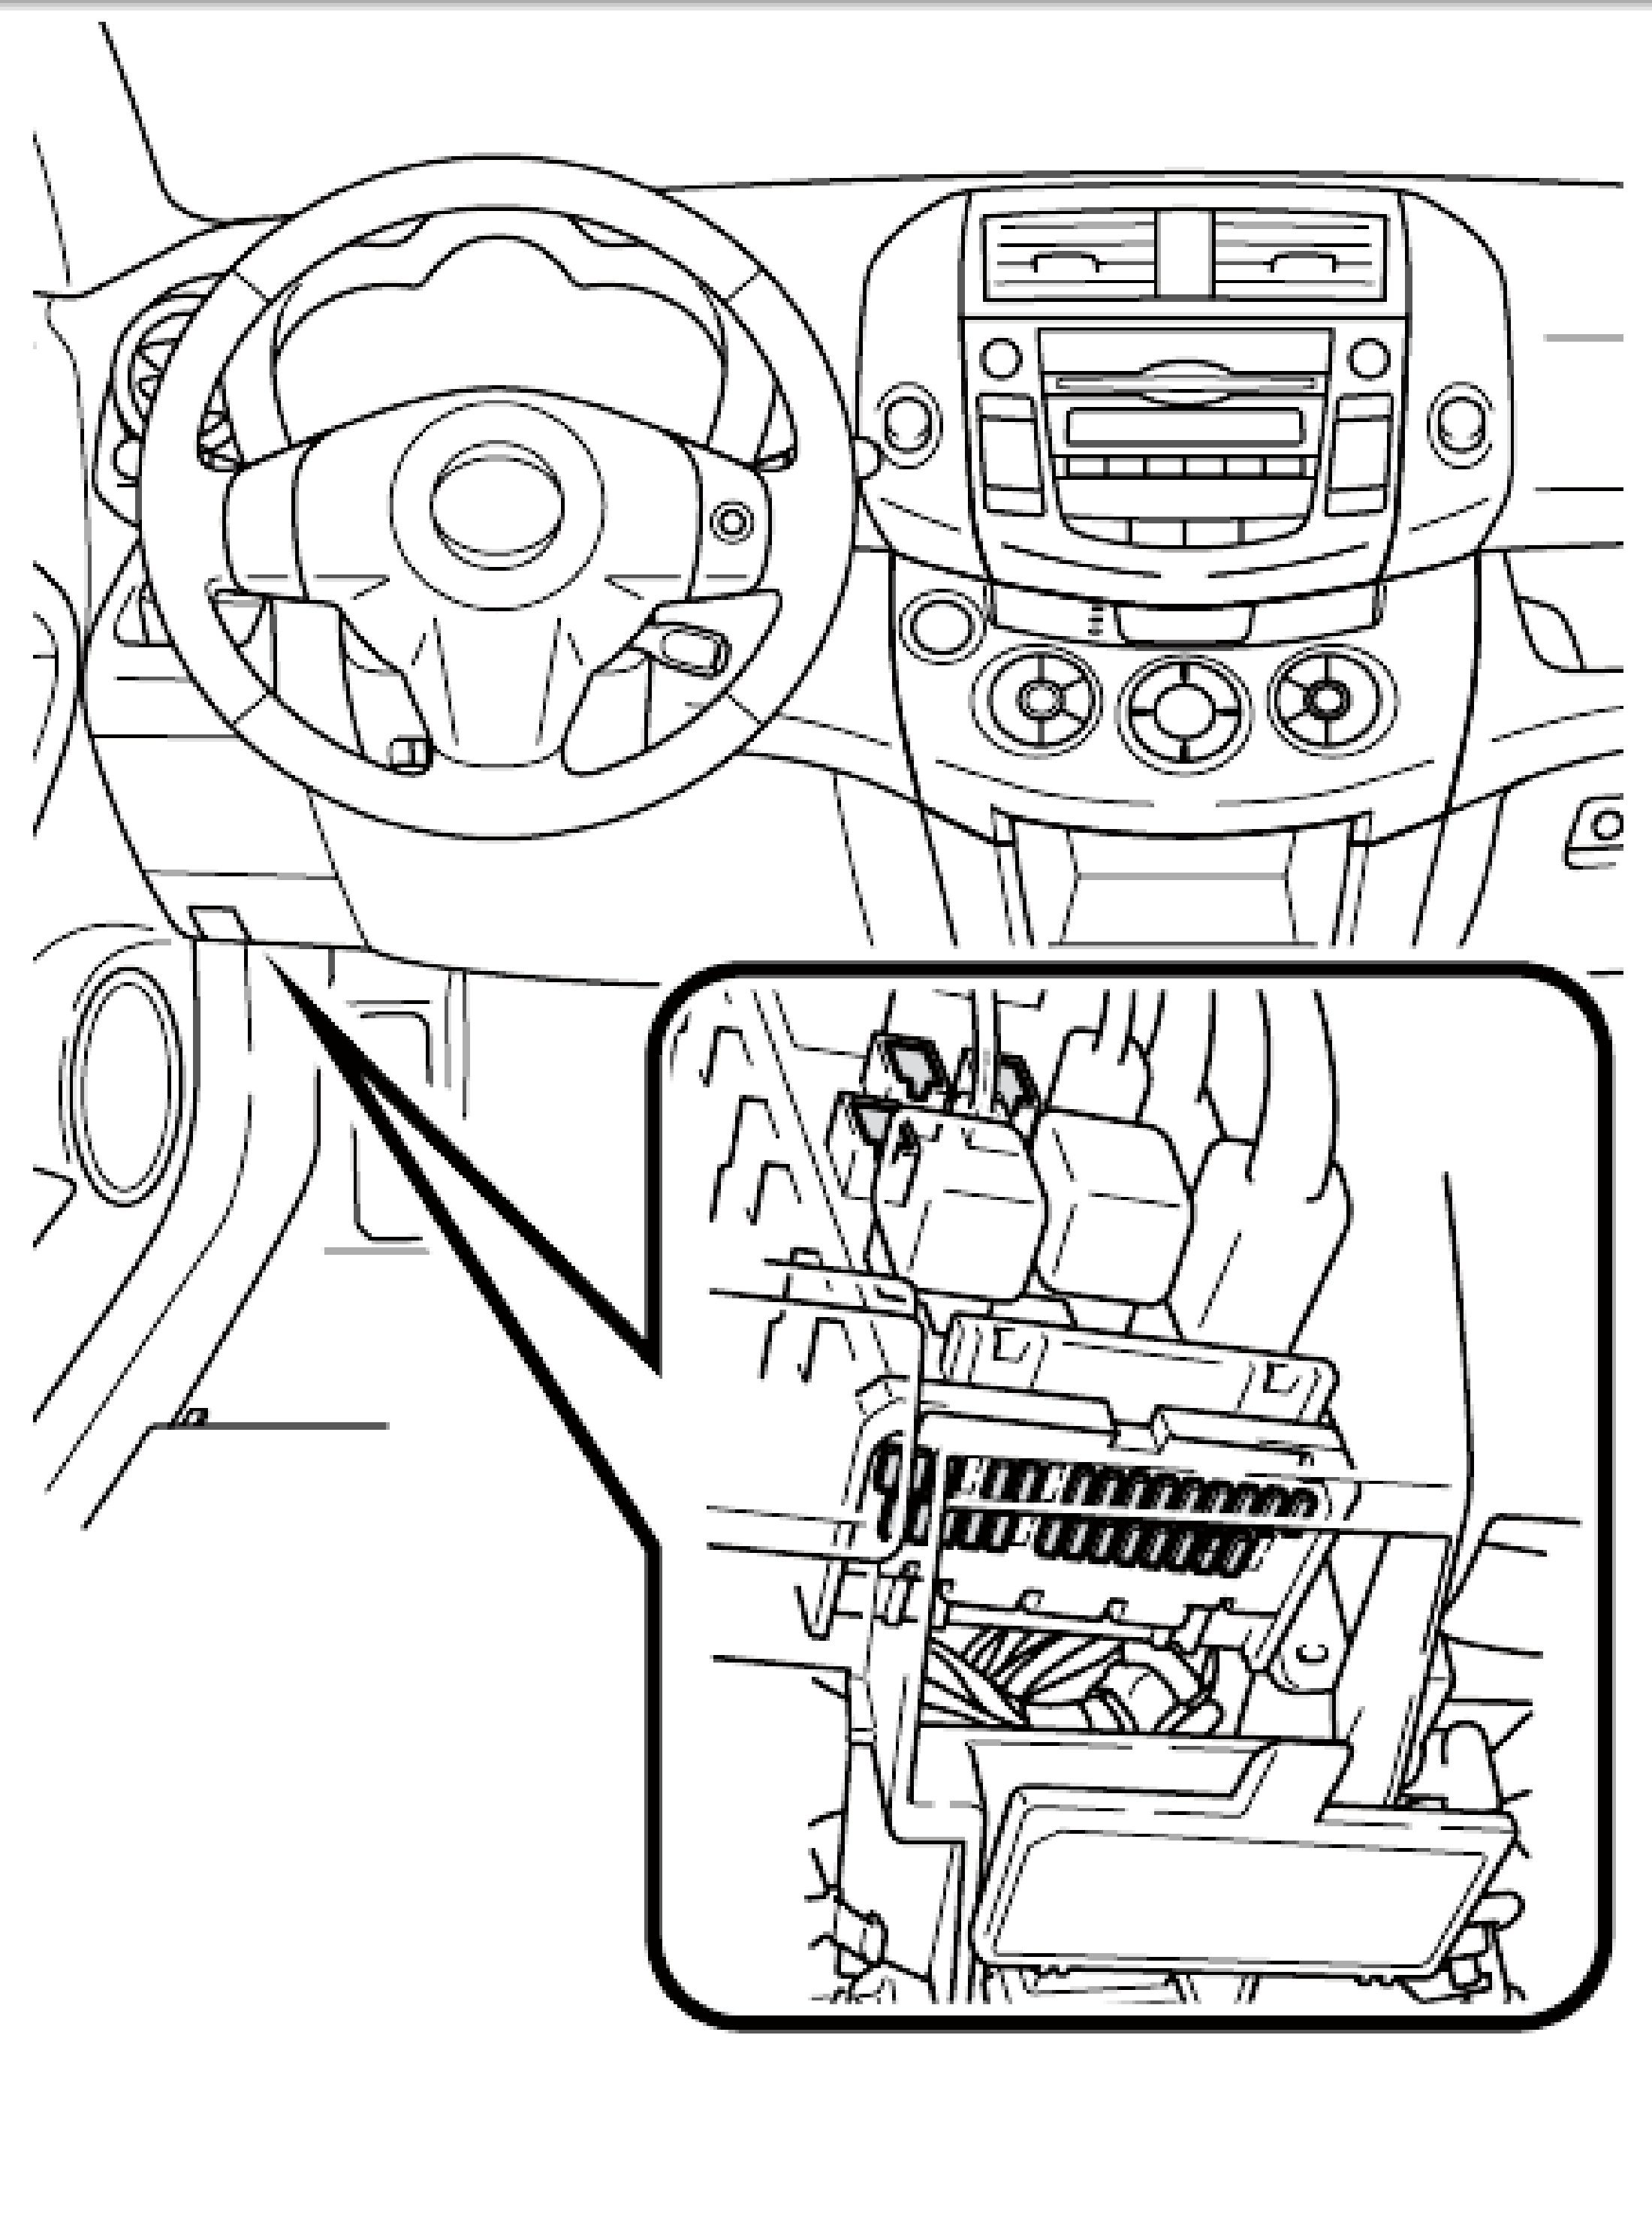 2000 toyota avalon fuse box diagram LlaPzdi 2000 toyota avalon fuse box diagram image details 2000 toyota avalon fuse box diagram at readyjetset.co